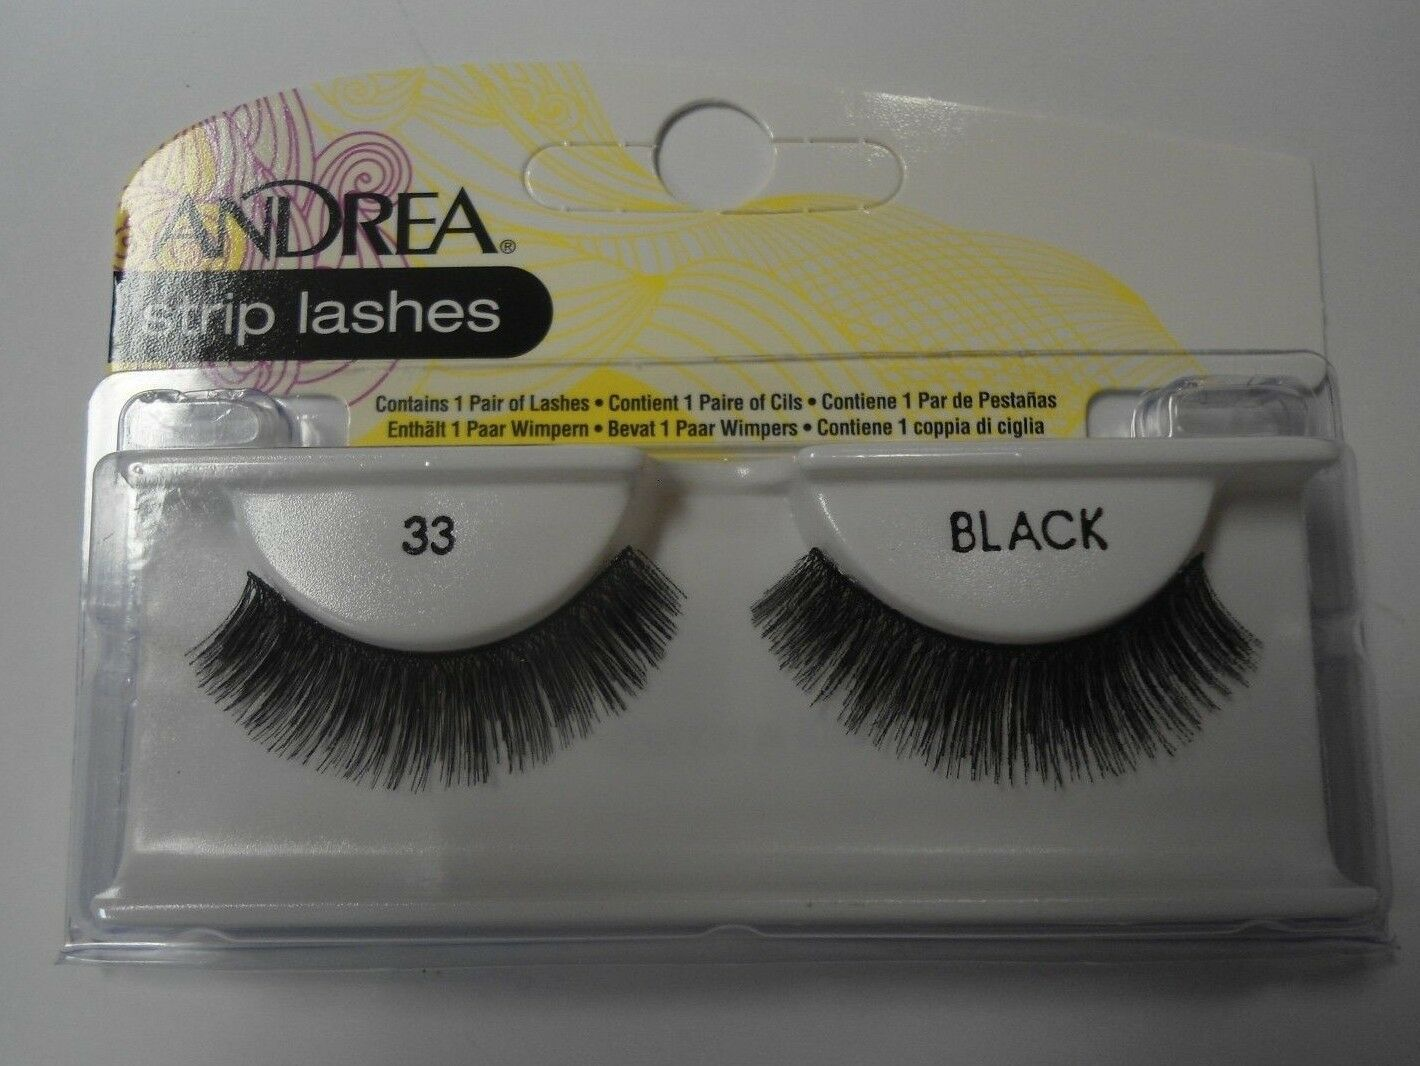 Primary image for Andrea's Strip Lashes Fashion Eye Lash Style 33 Black - (Pack of 6)